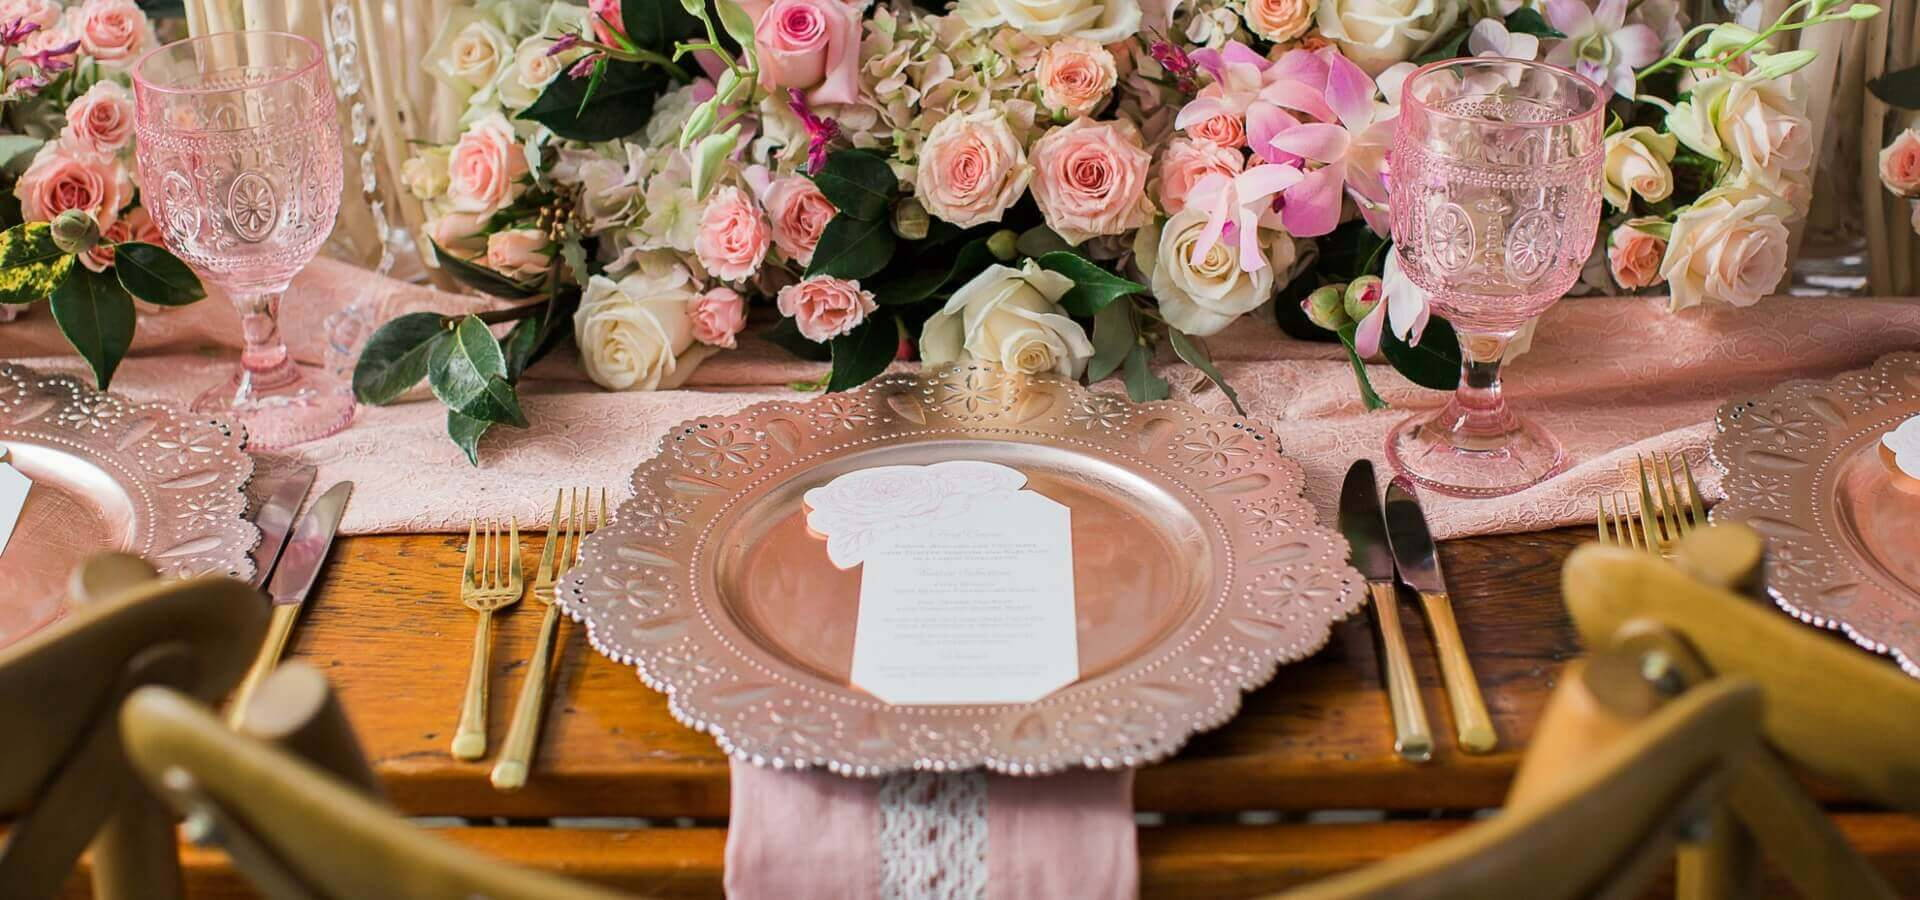 Hero image for A Romantic Blush and Cream Styled Shoot